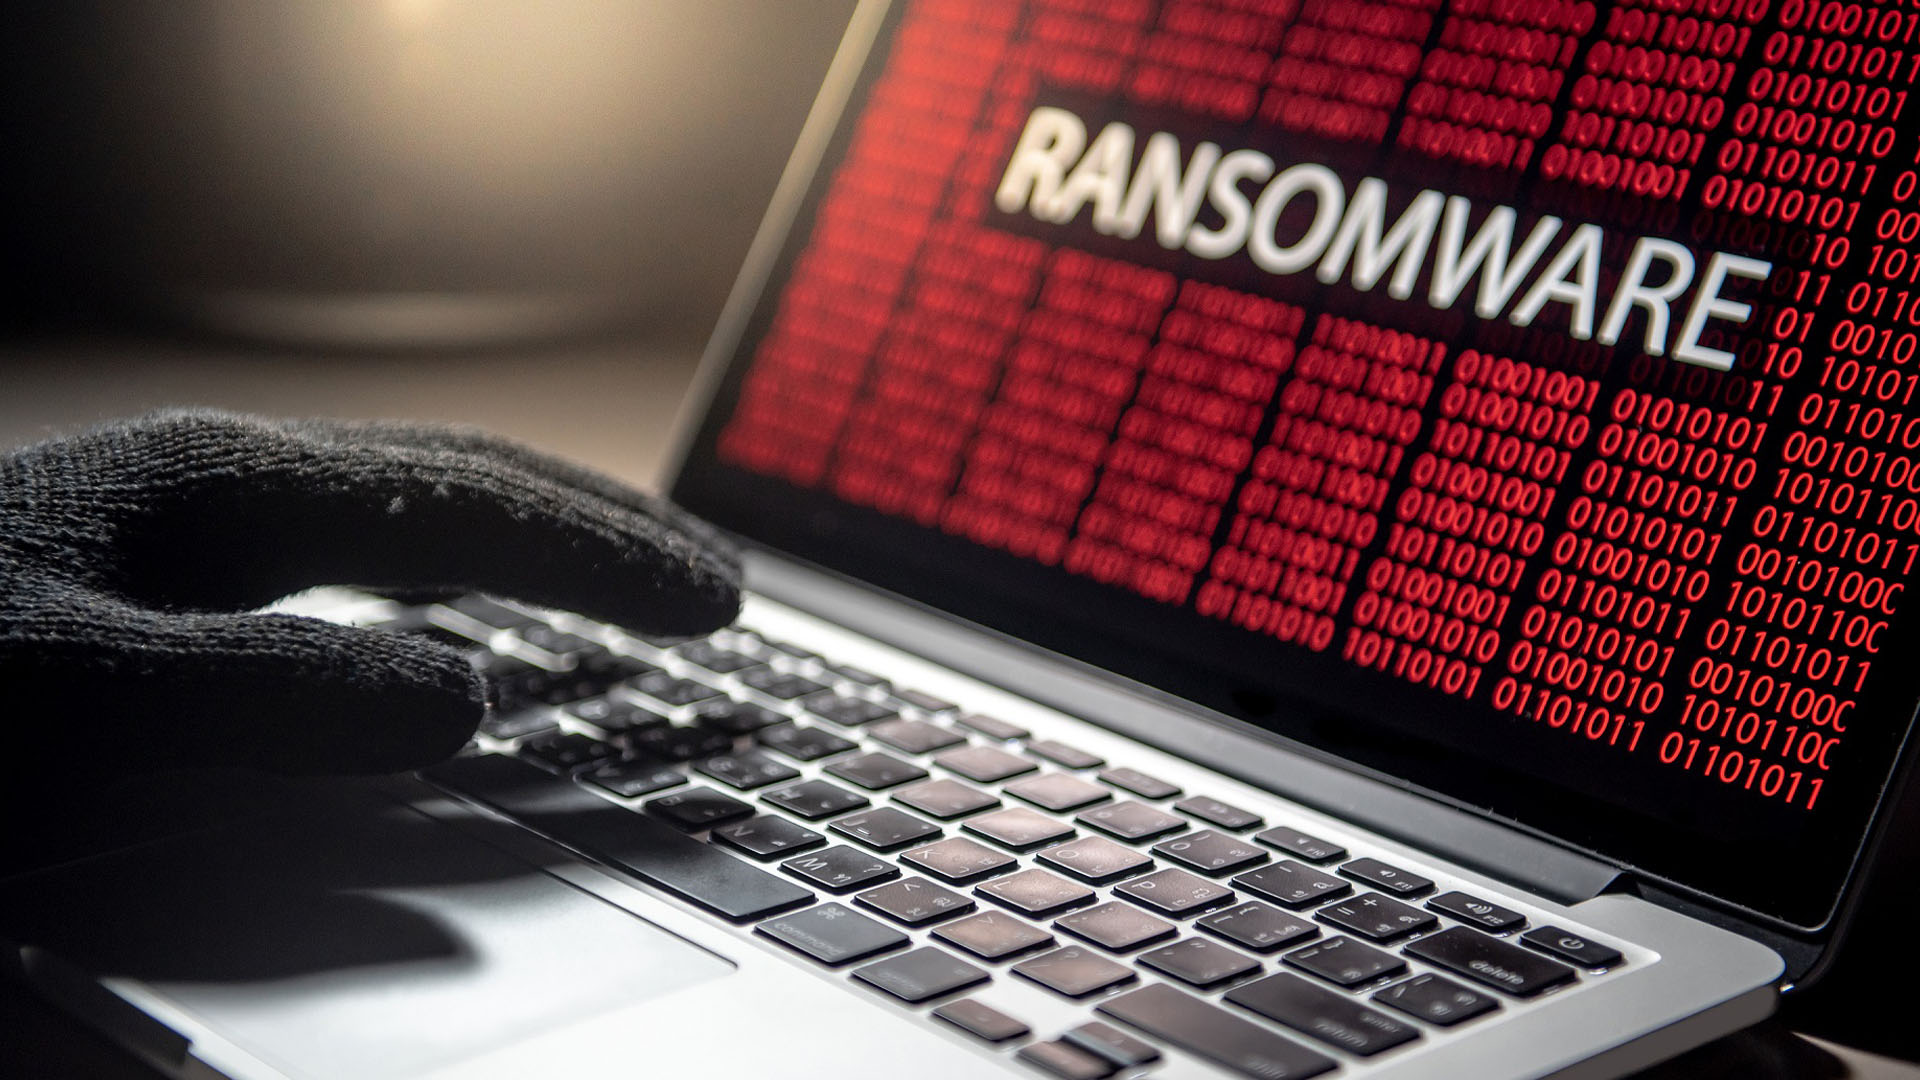 Ransomware 2.0 is expanding to triple extortion threats!